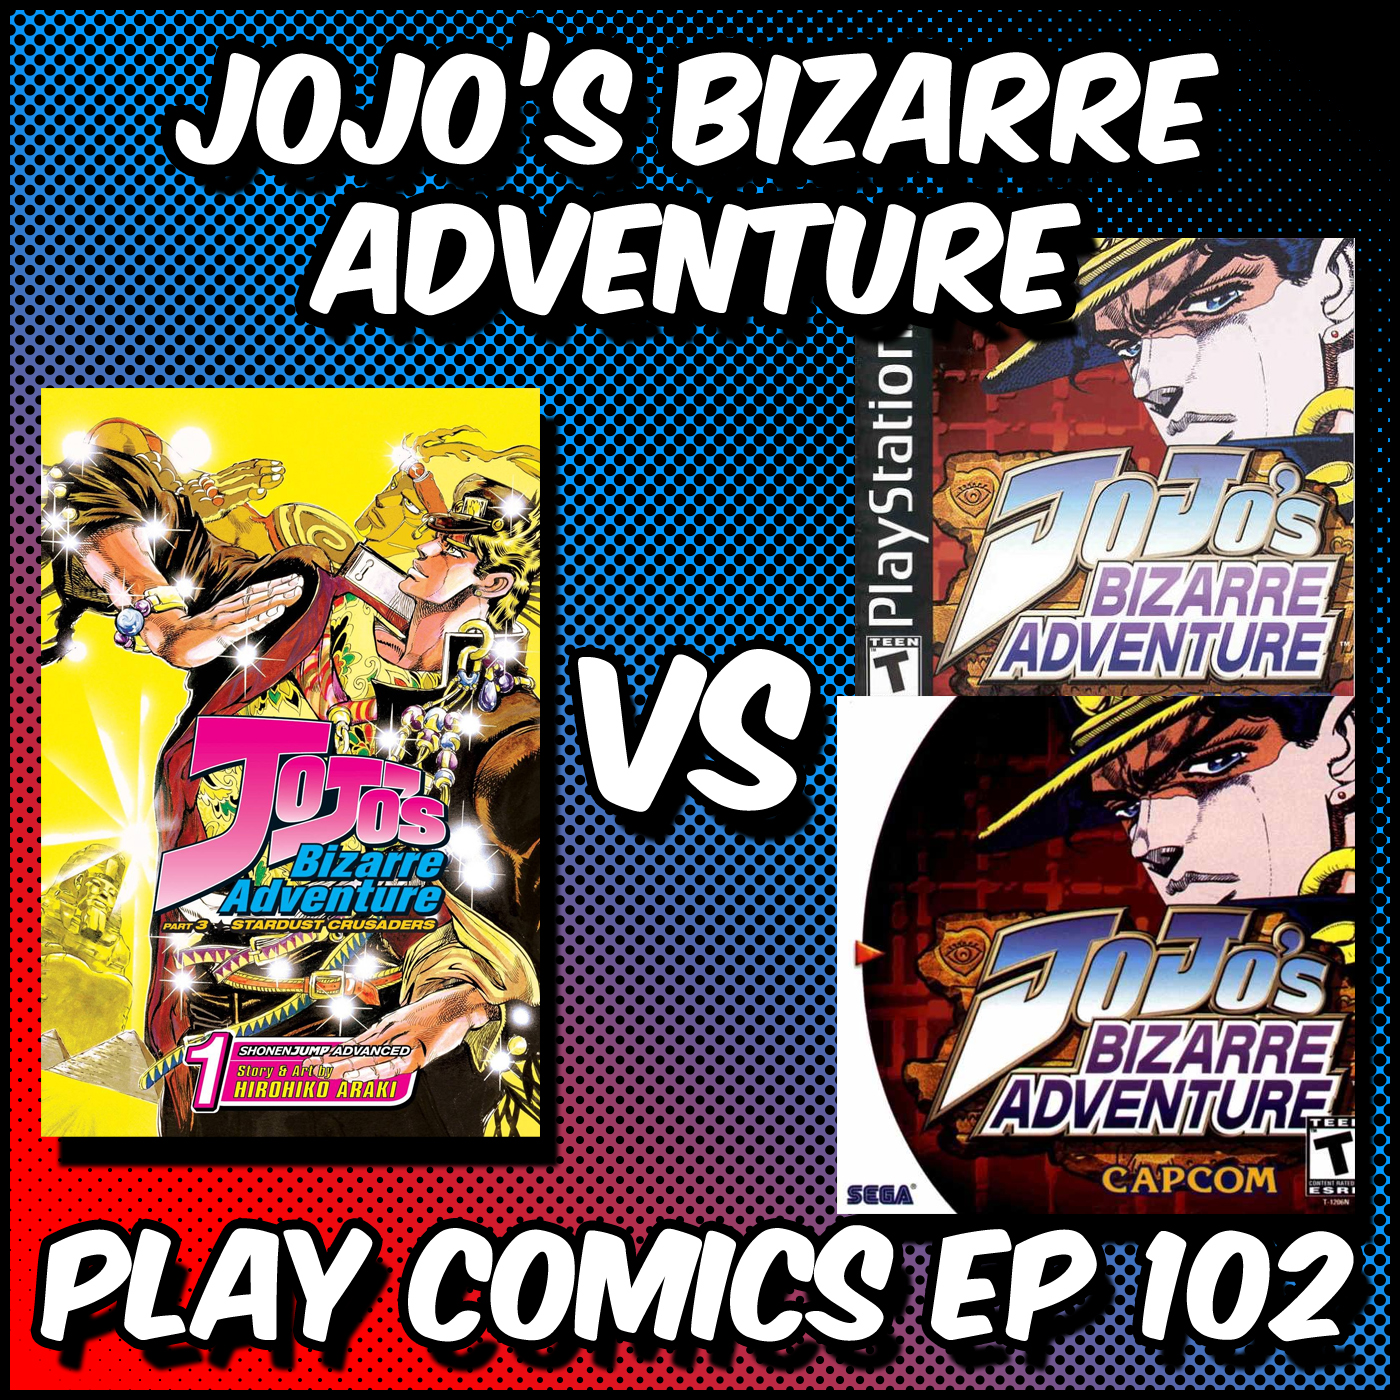 Jojo's Bizarre Adventure with David Weinberger (Shonen Flop)